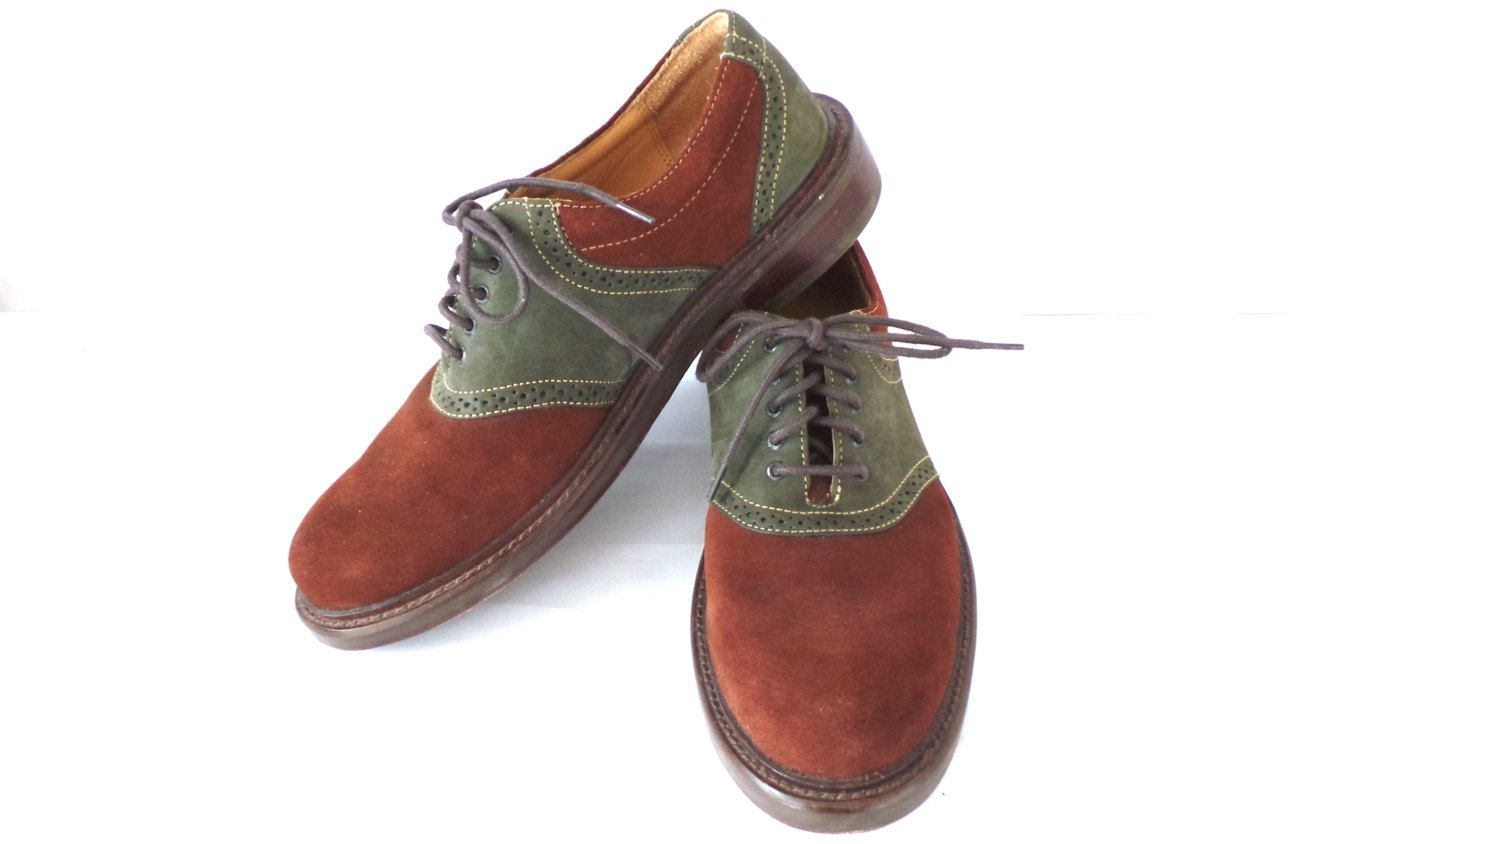 ORVIS Footwear Suede Saddle Oxford Shoes, Like New, Size 8